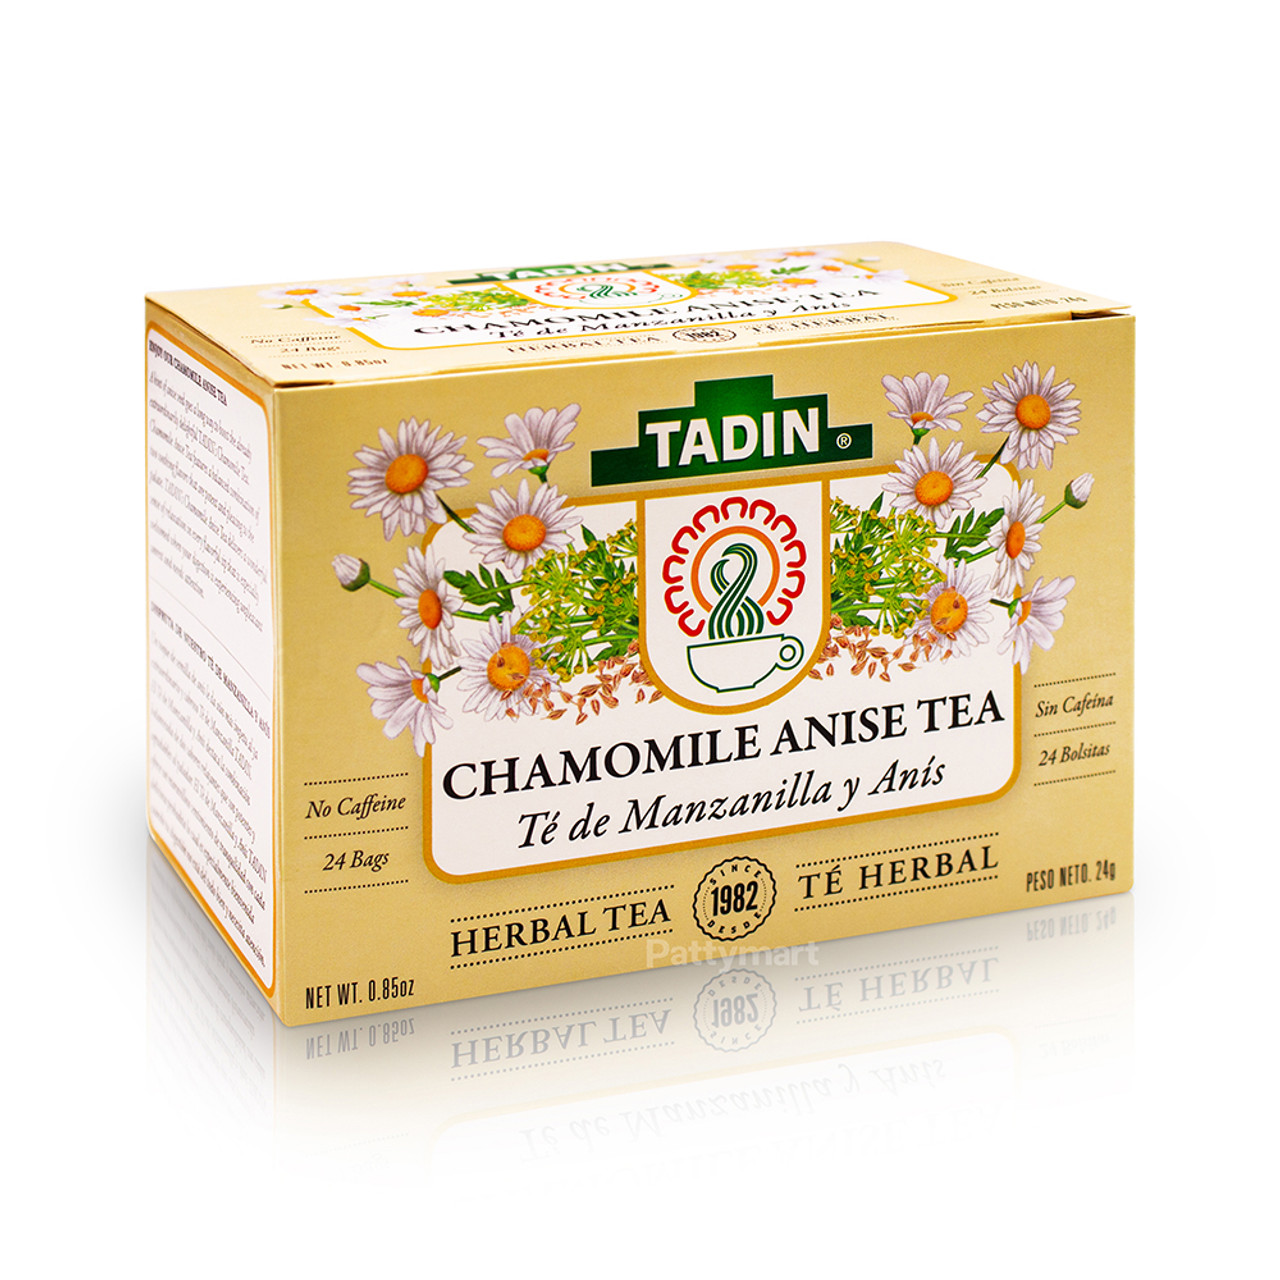 Tadin Tea Chamomile And Anise Te Manzanilla Y Anis